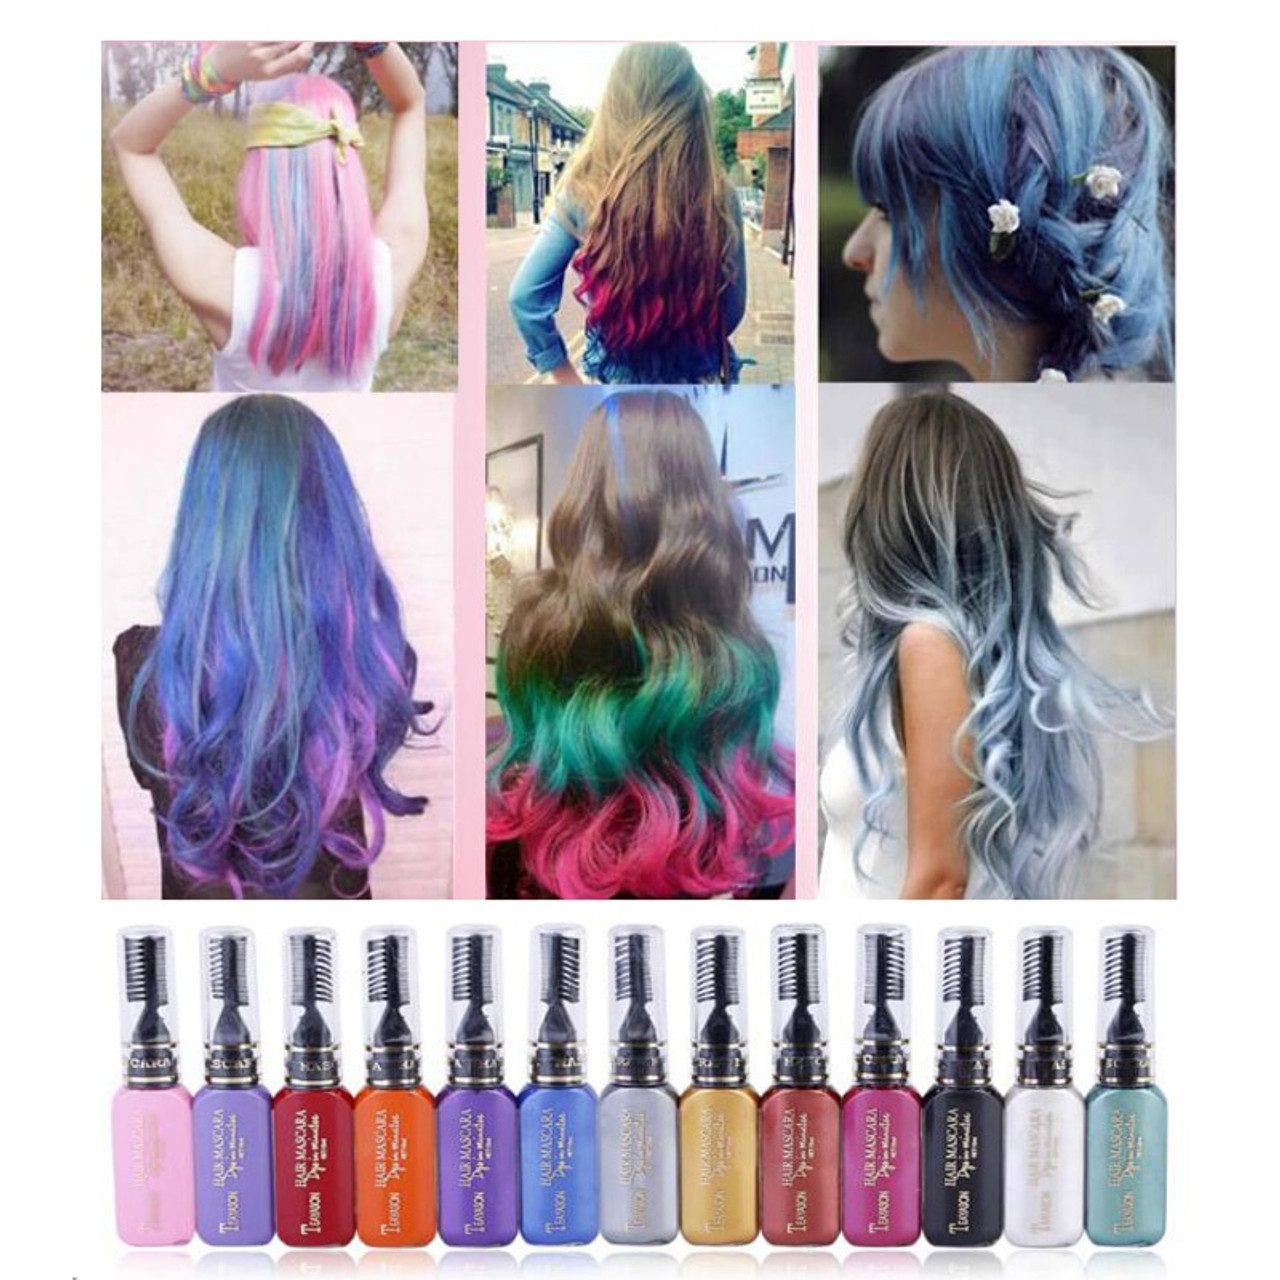 Fashion 13 Colors One Time Beauty Hair Dye Temporary Non Toxic Diy Hair Color Mascara Cream Washable Hair Dye Crayons